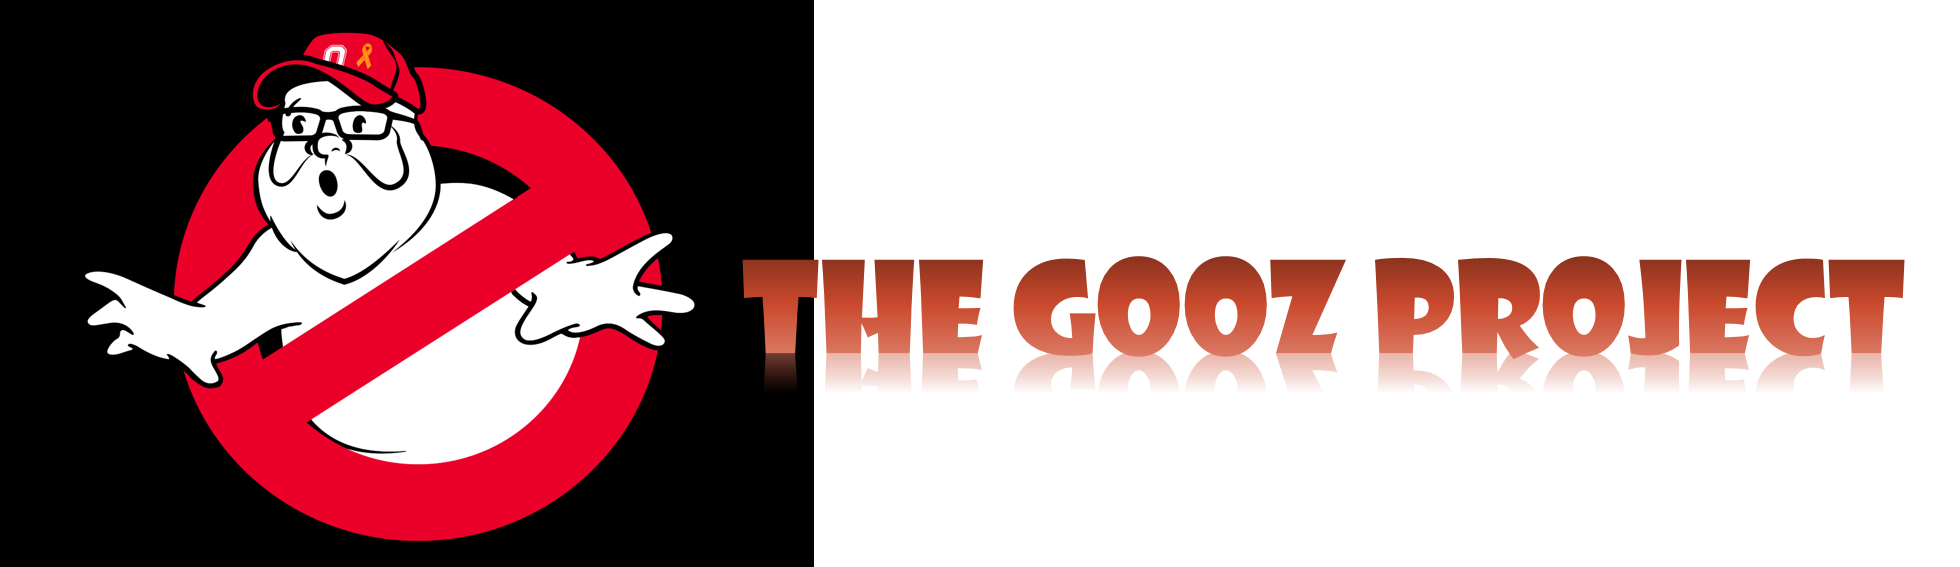 The Gooz Project